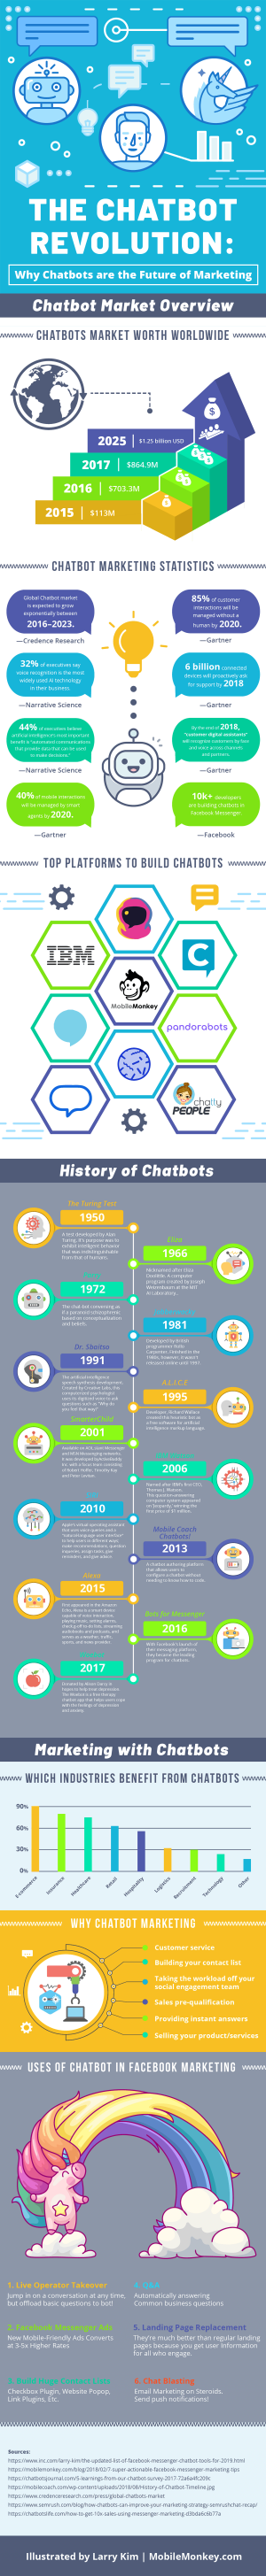 The Chatbot Revolution: Why Chatbots are the Future of Marketing